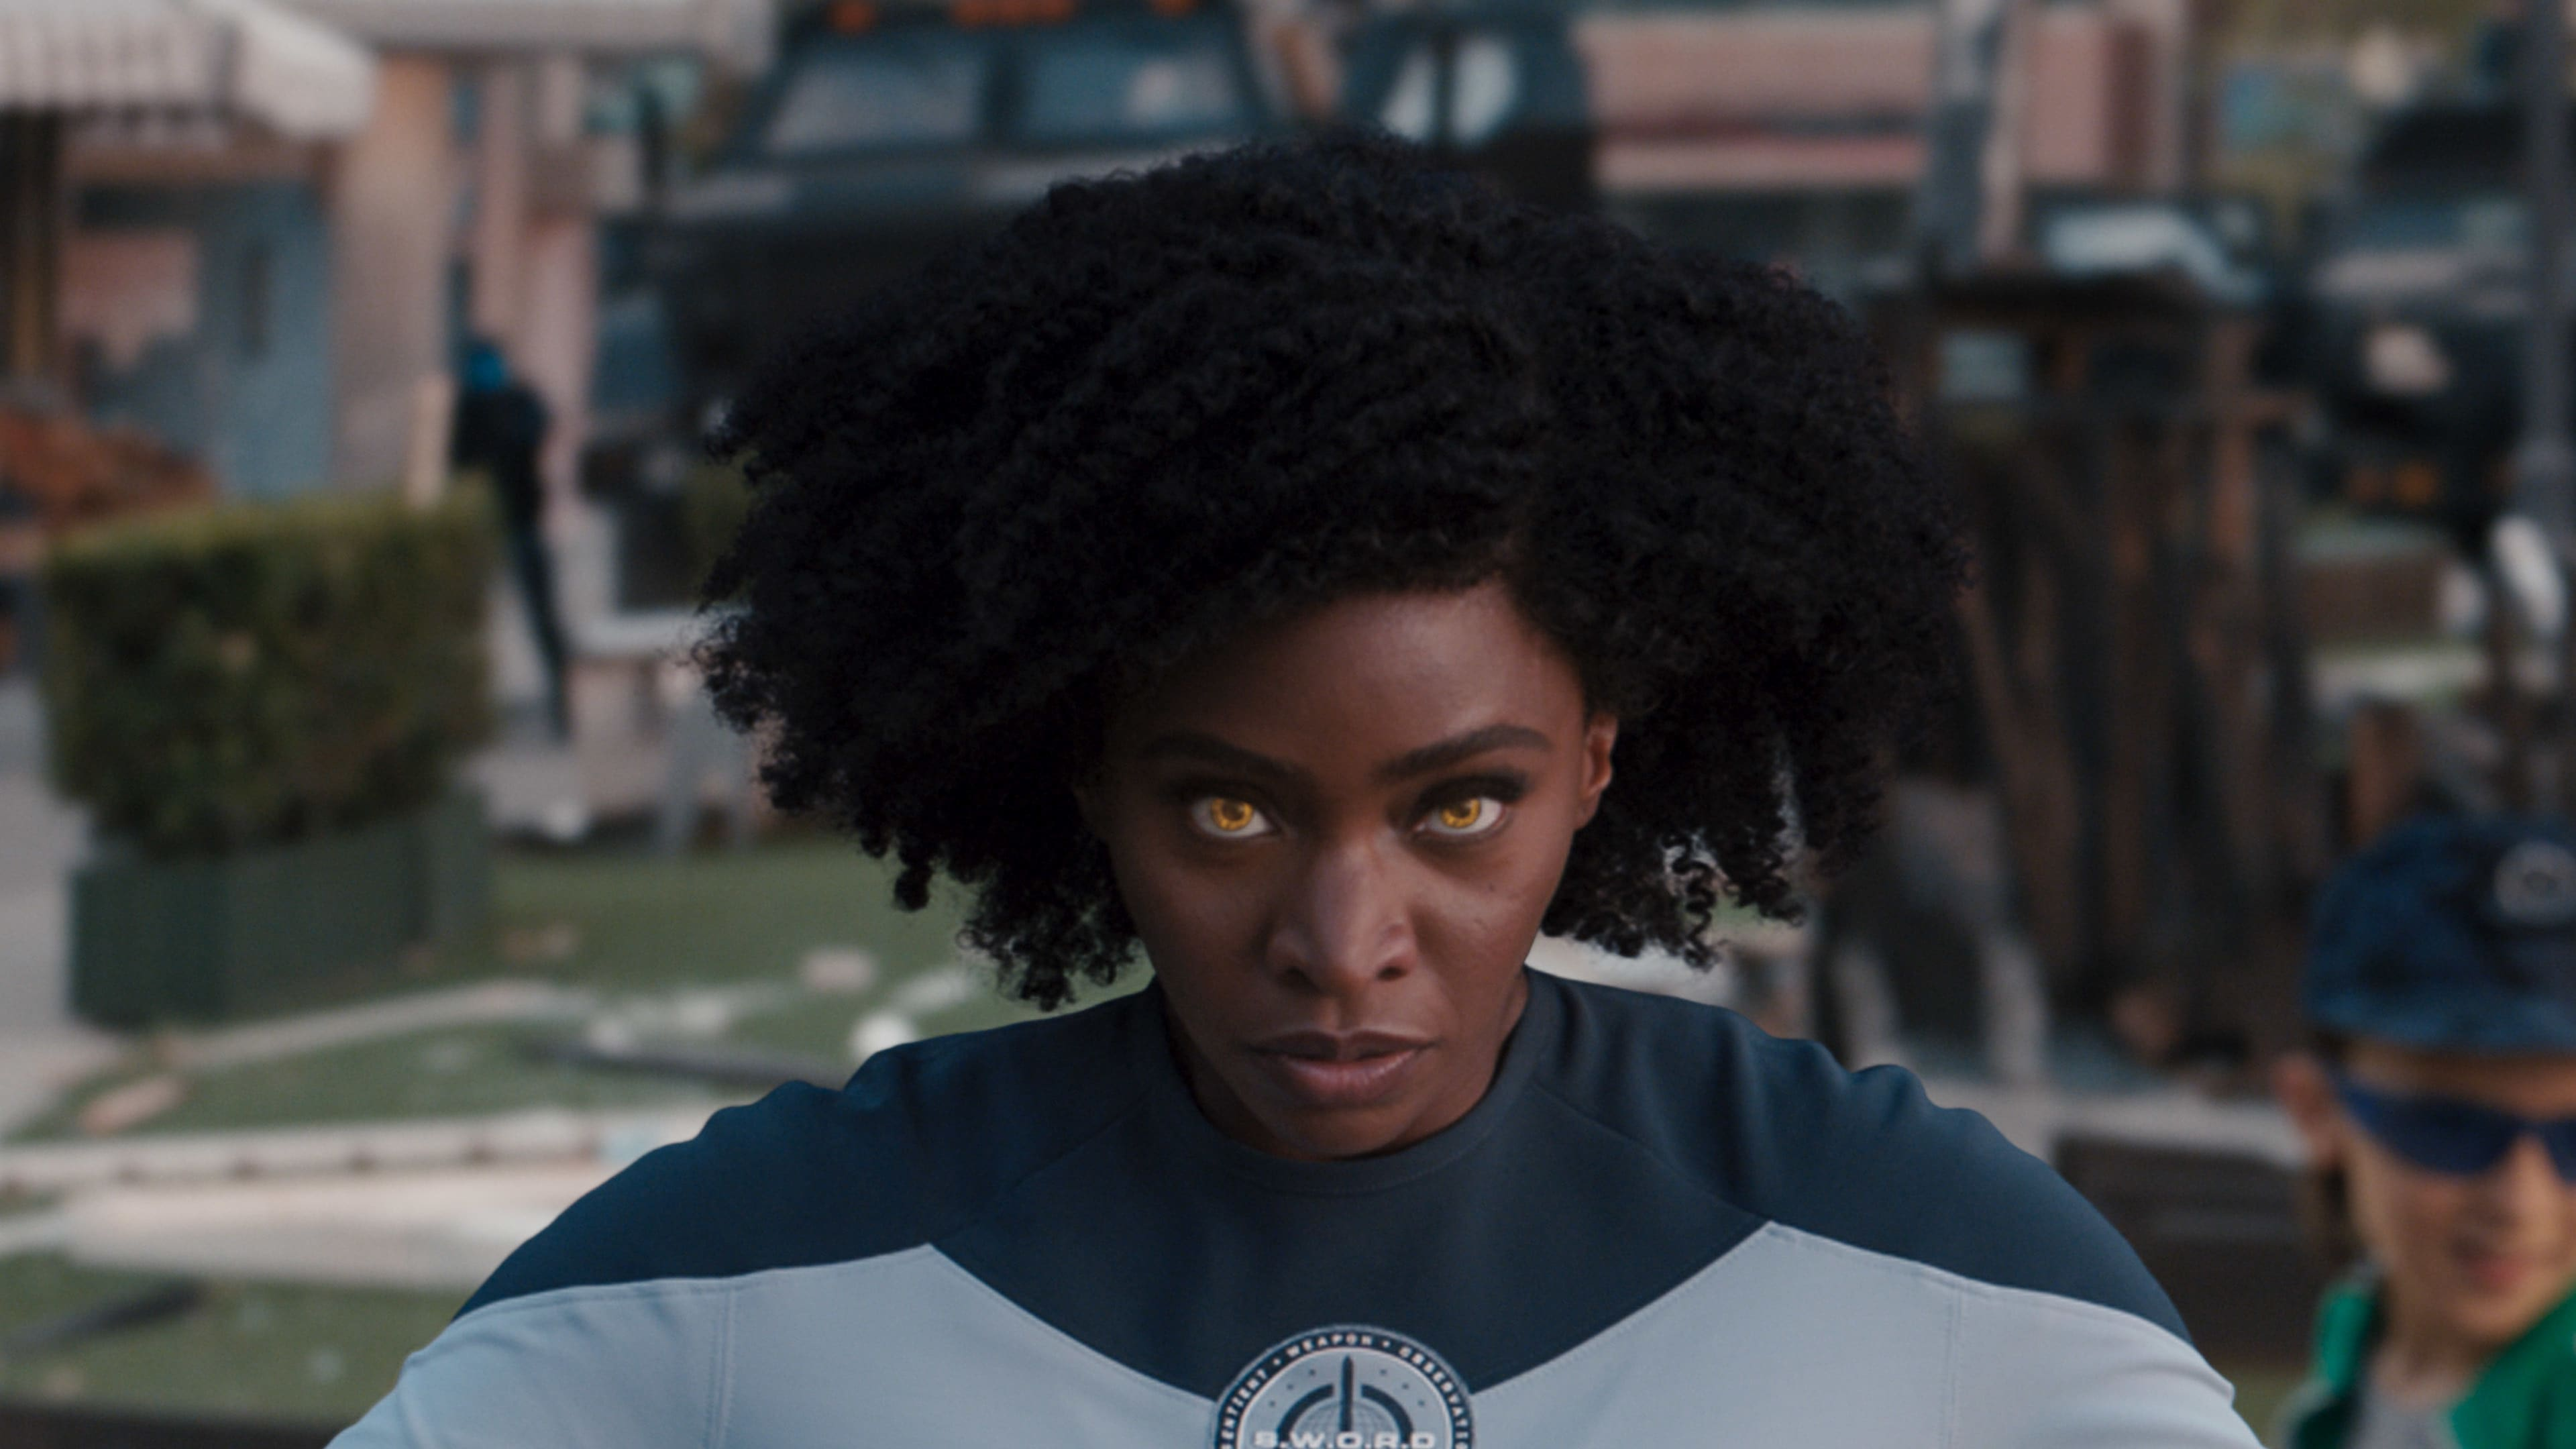 Teyonah Parris as Monica Rambeau in Marvel Studios' WANDAVISION exclusively on Disney+. Photo courtesy of Marvel Studios. ©Marvel Studios 2021. All Rights Reserved.